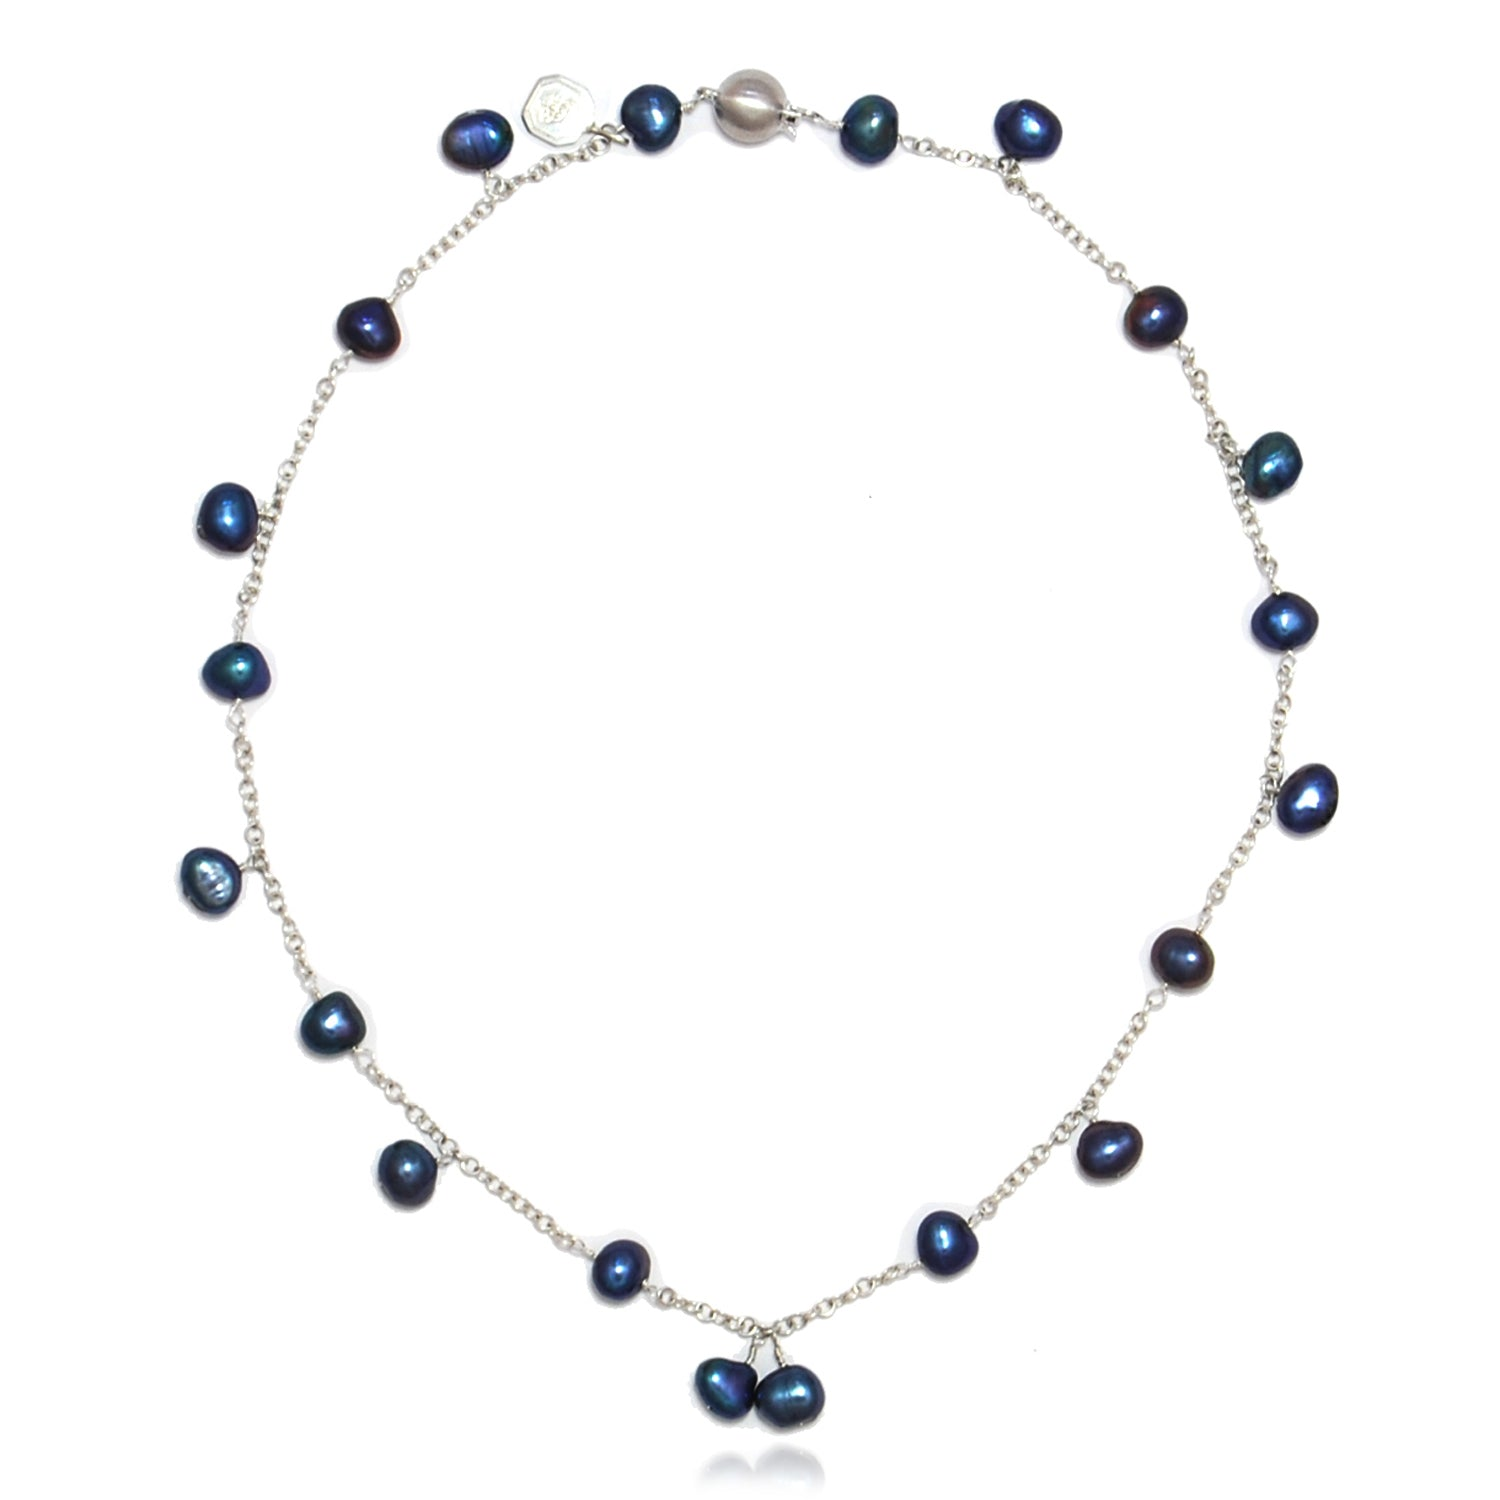 Biwa Pearl and Silver Chain Necklace in Peacock Black